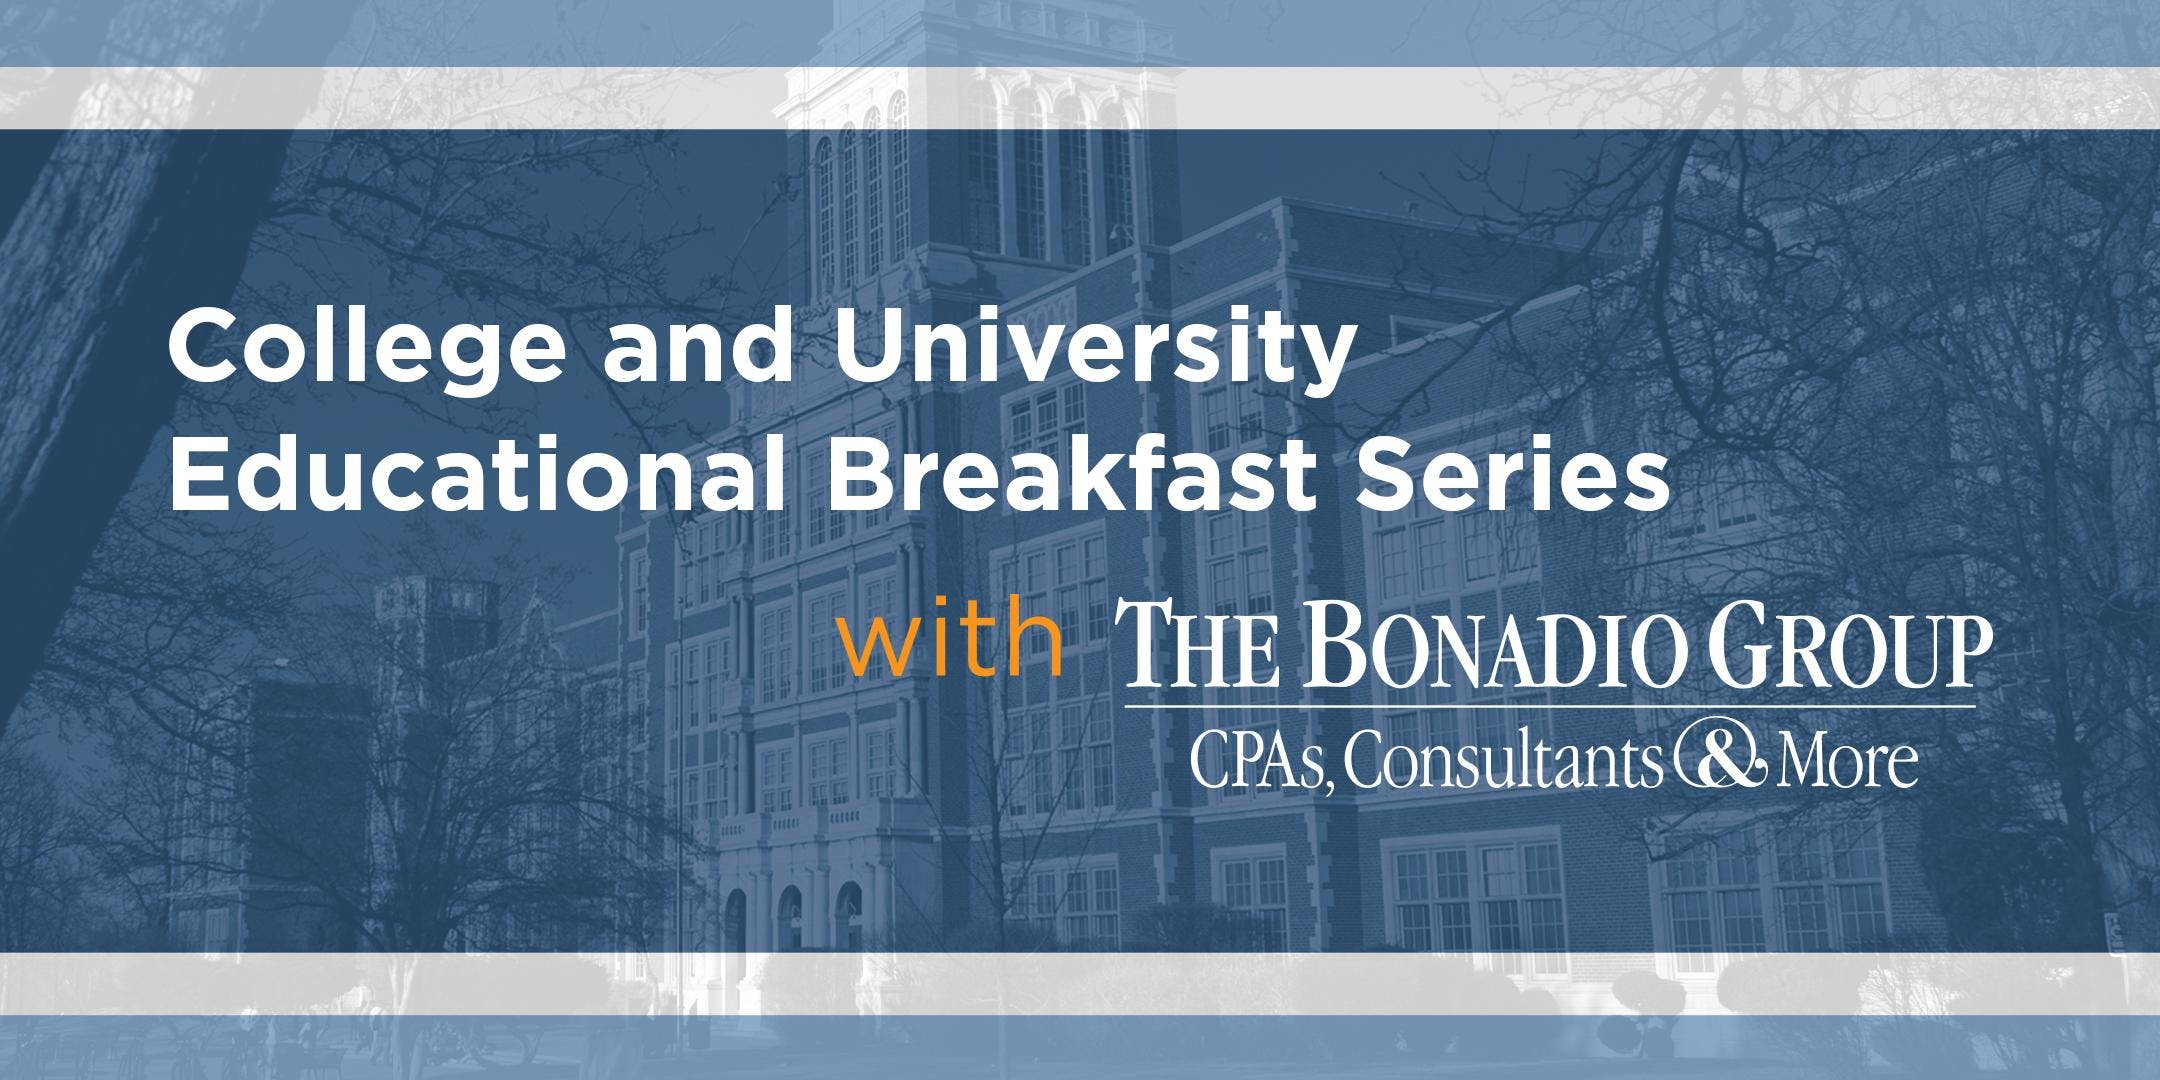 College & University Winter Educational Breakfast Series in Buffalo - January 16, 2019